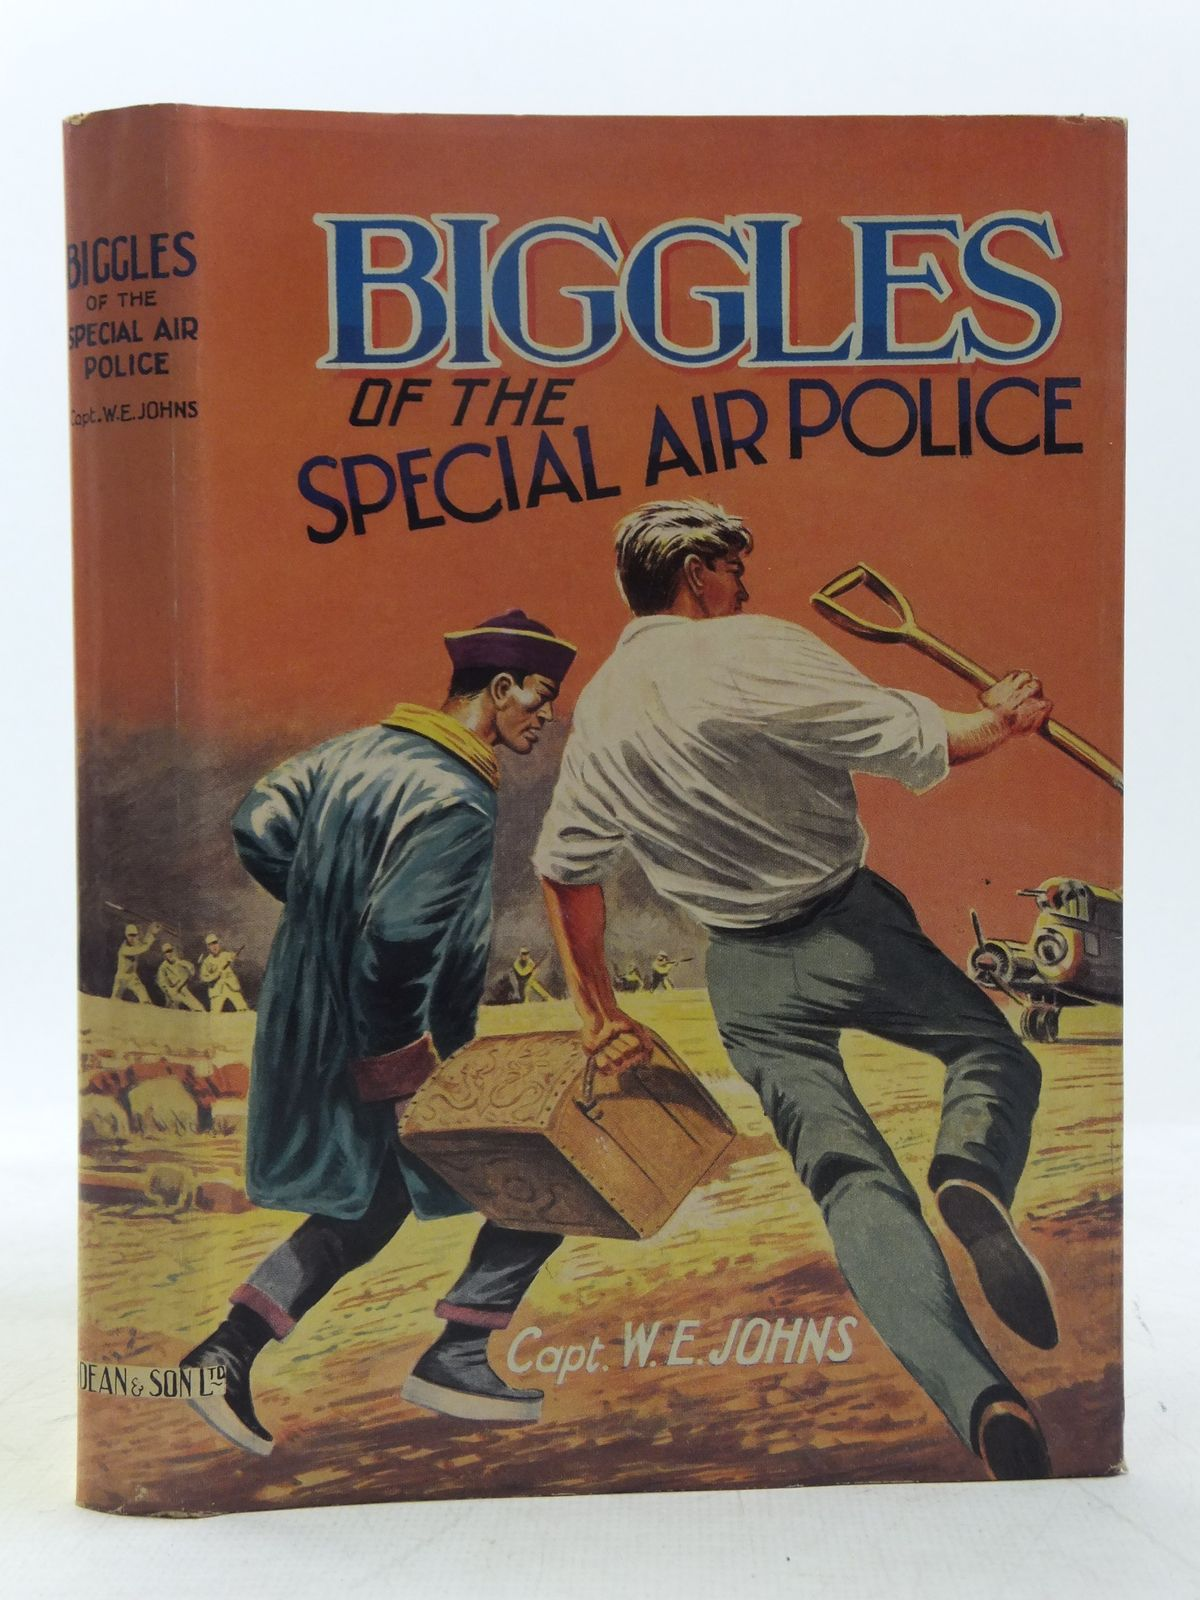 Photo of BIGGLES OF THE SPECIAL AIR POLICE written by Johns, W.E. published by Dean & Son Ltd. (STOCK CODE: 2118374)  for sale by Stella & Rose's Books